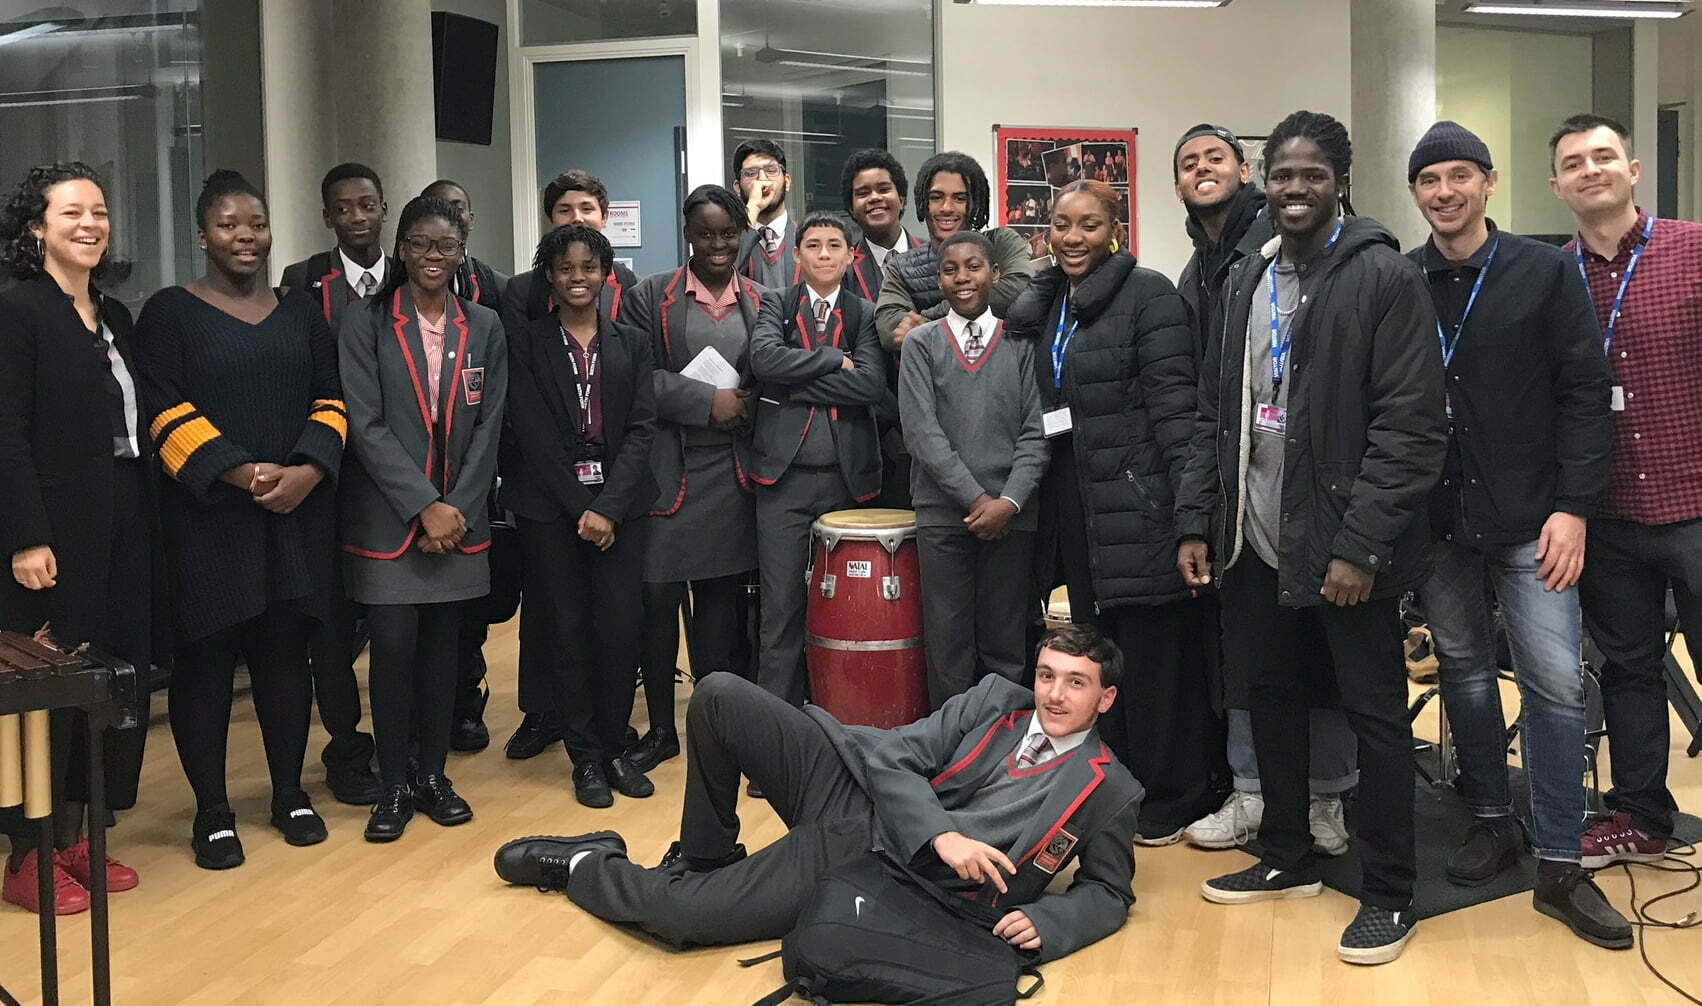 Future Sound students and musicians lined up together smiling